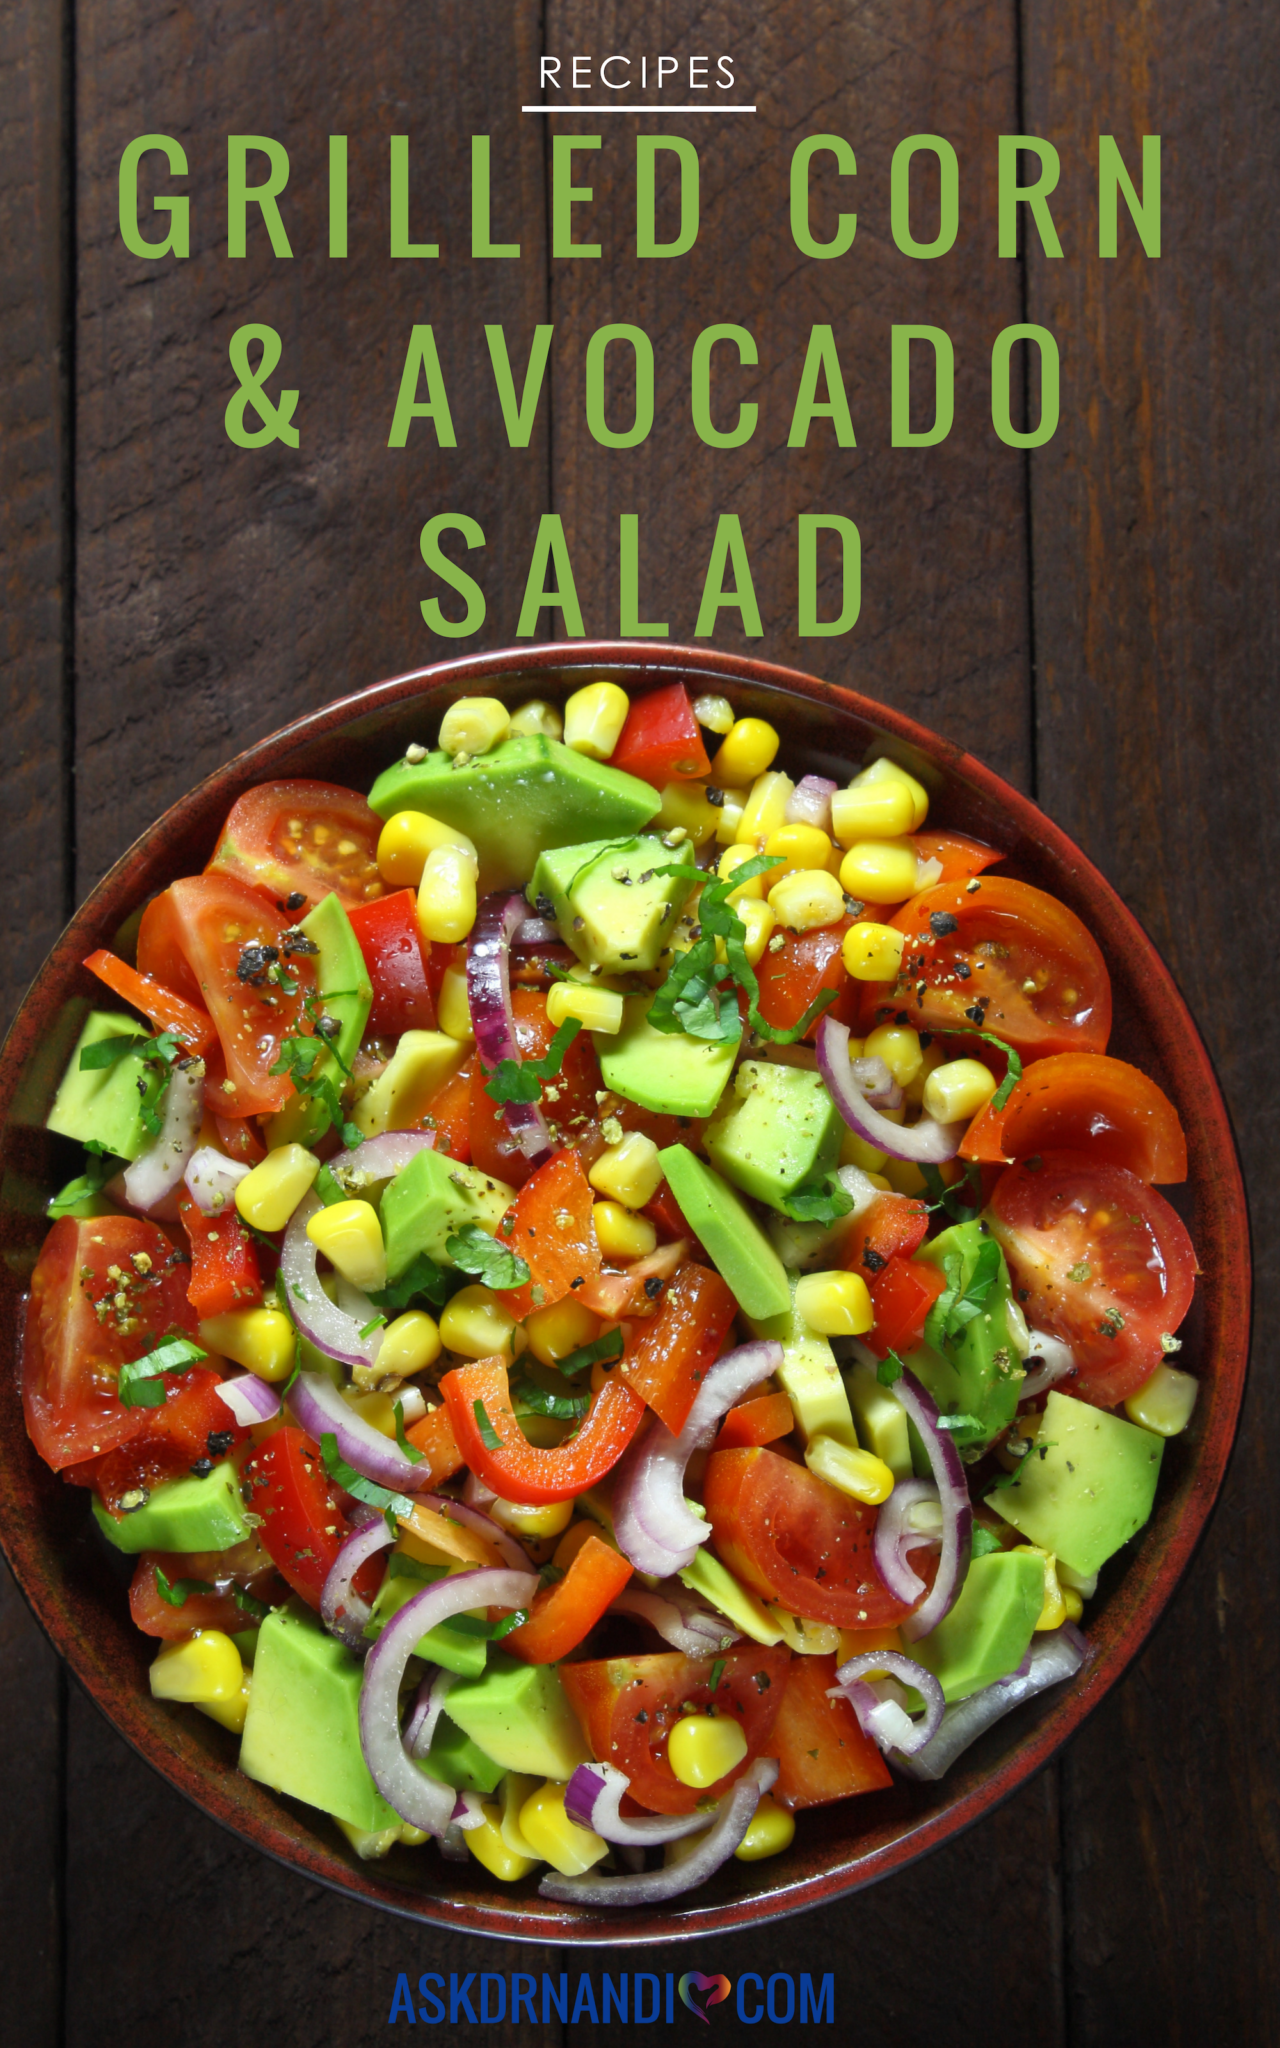 Check Out This Amazing Grilled Corn and Avocado Salad Recipe by Dr. Nandi.